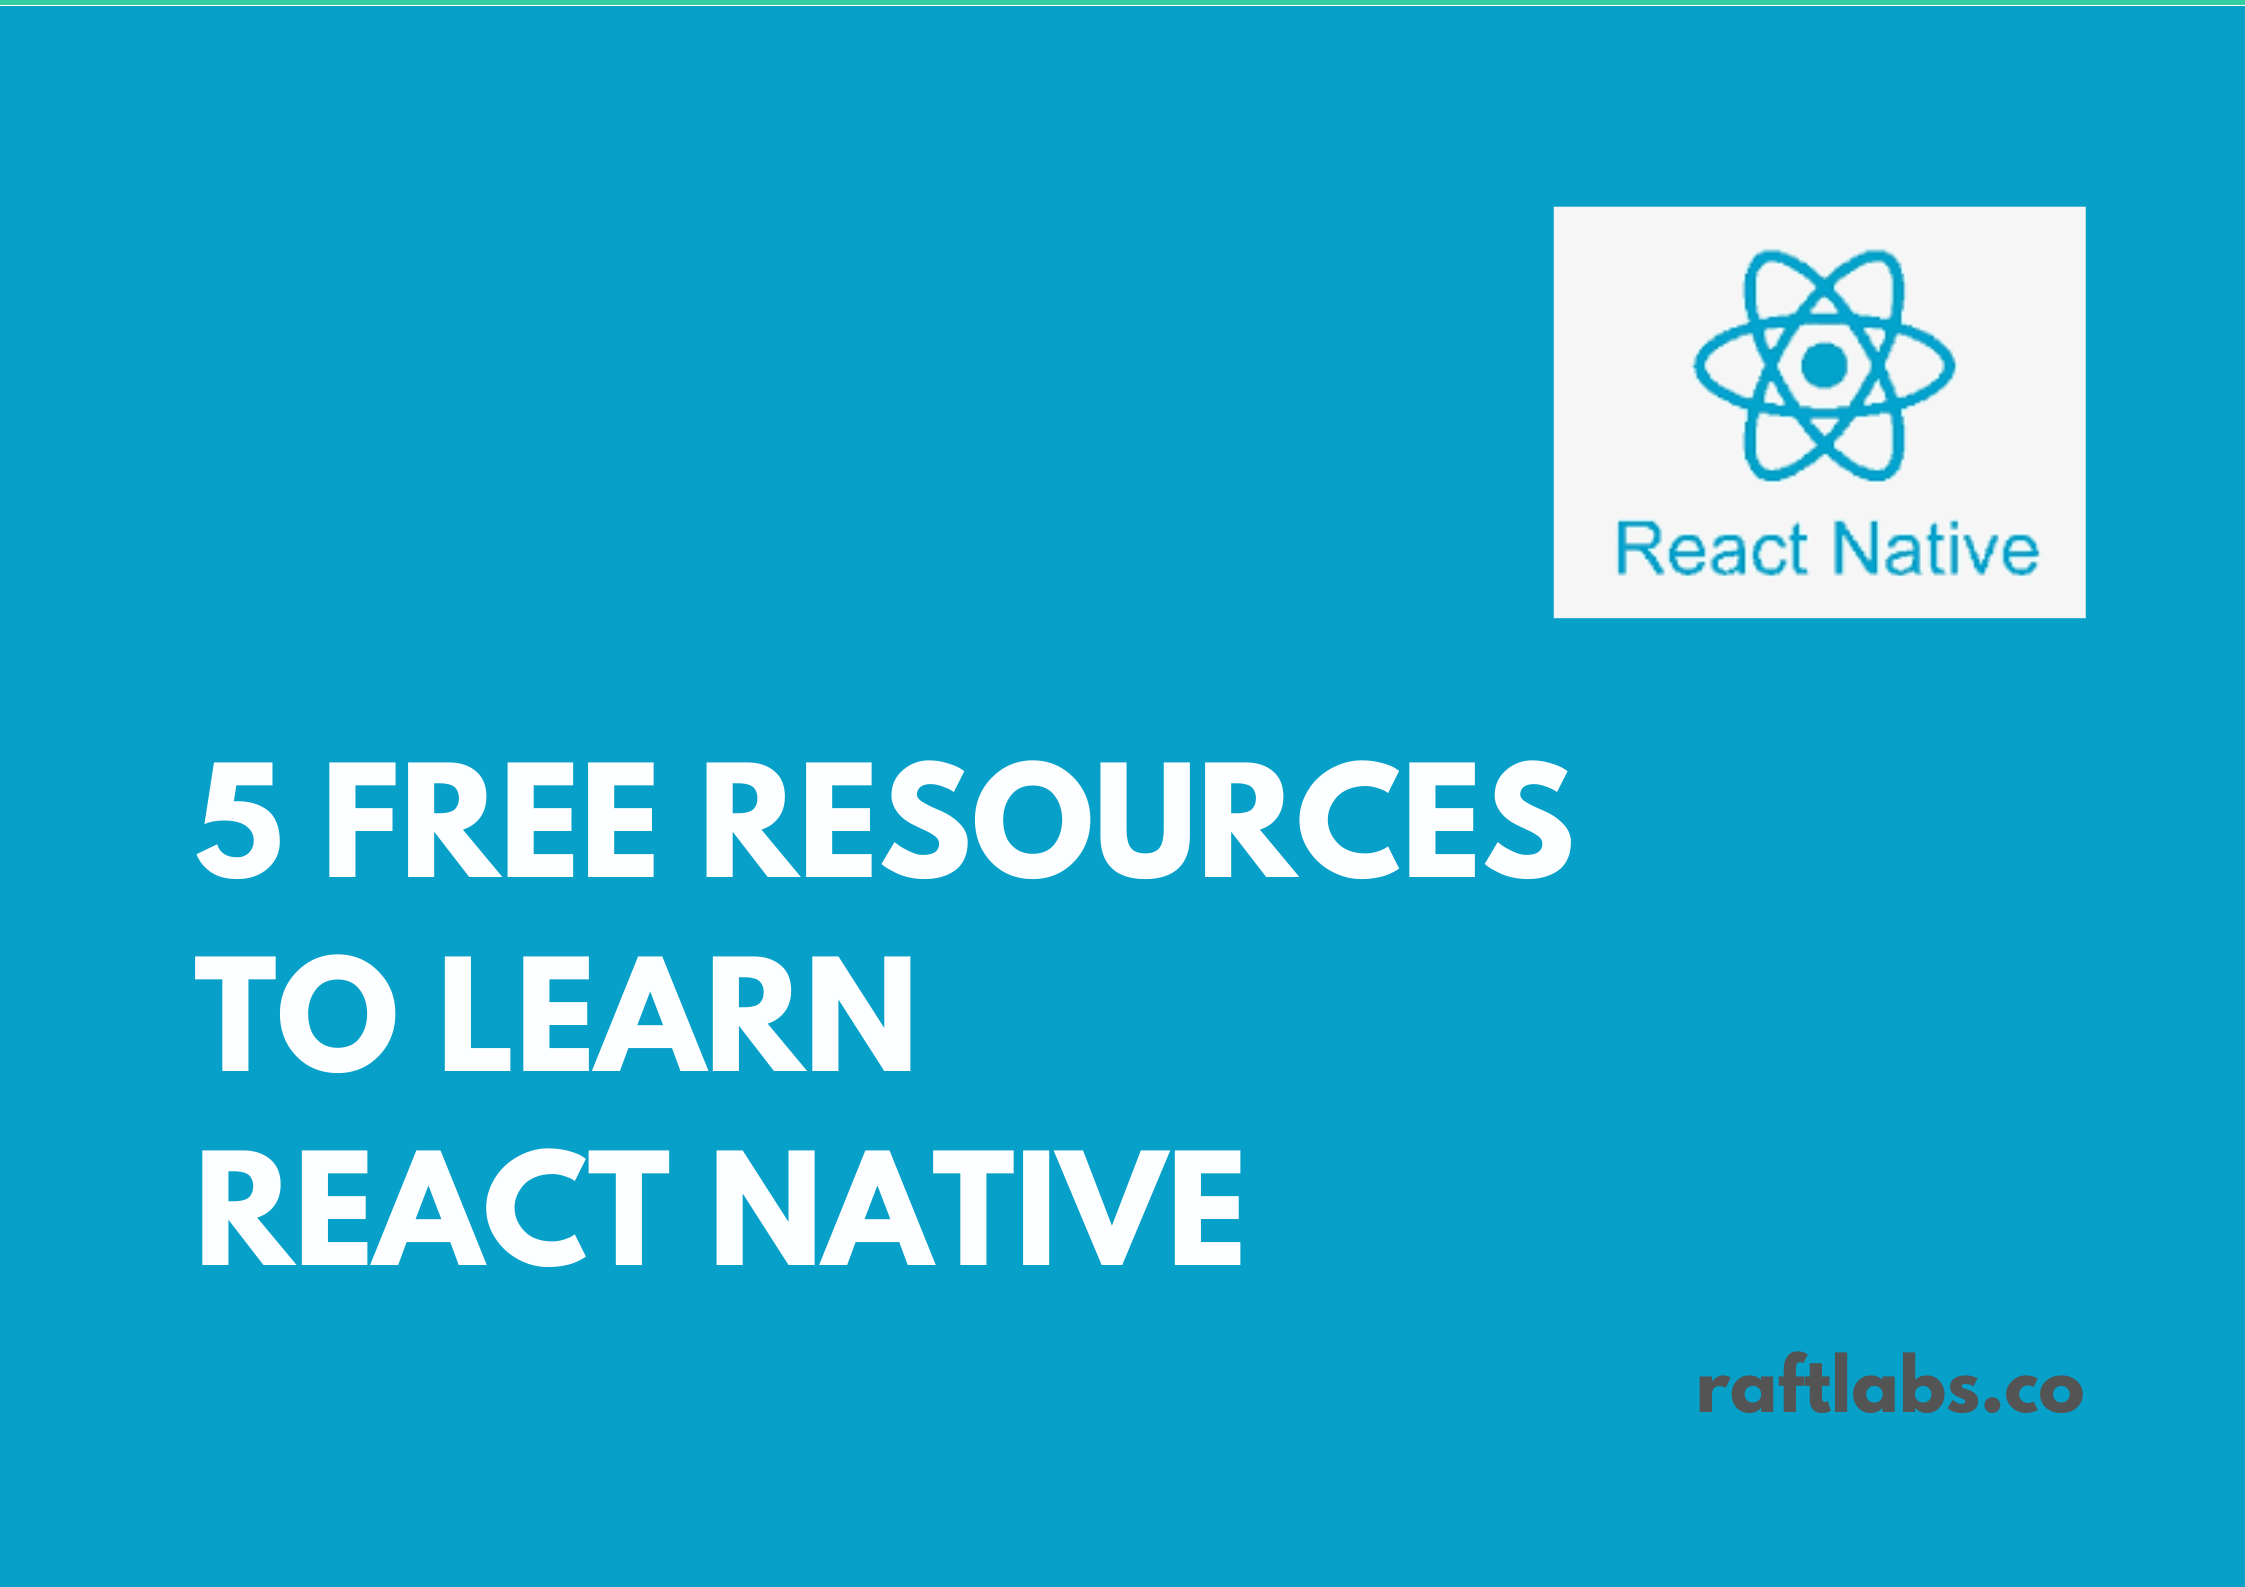 5 FREE Resources to learn React Native with React logo - raftlabs.co